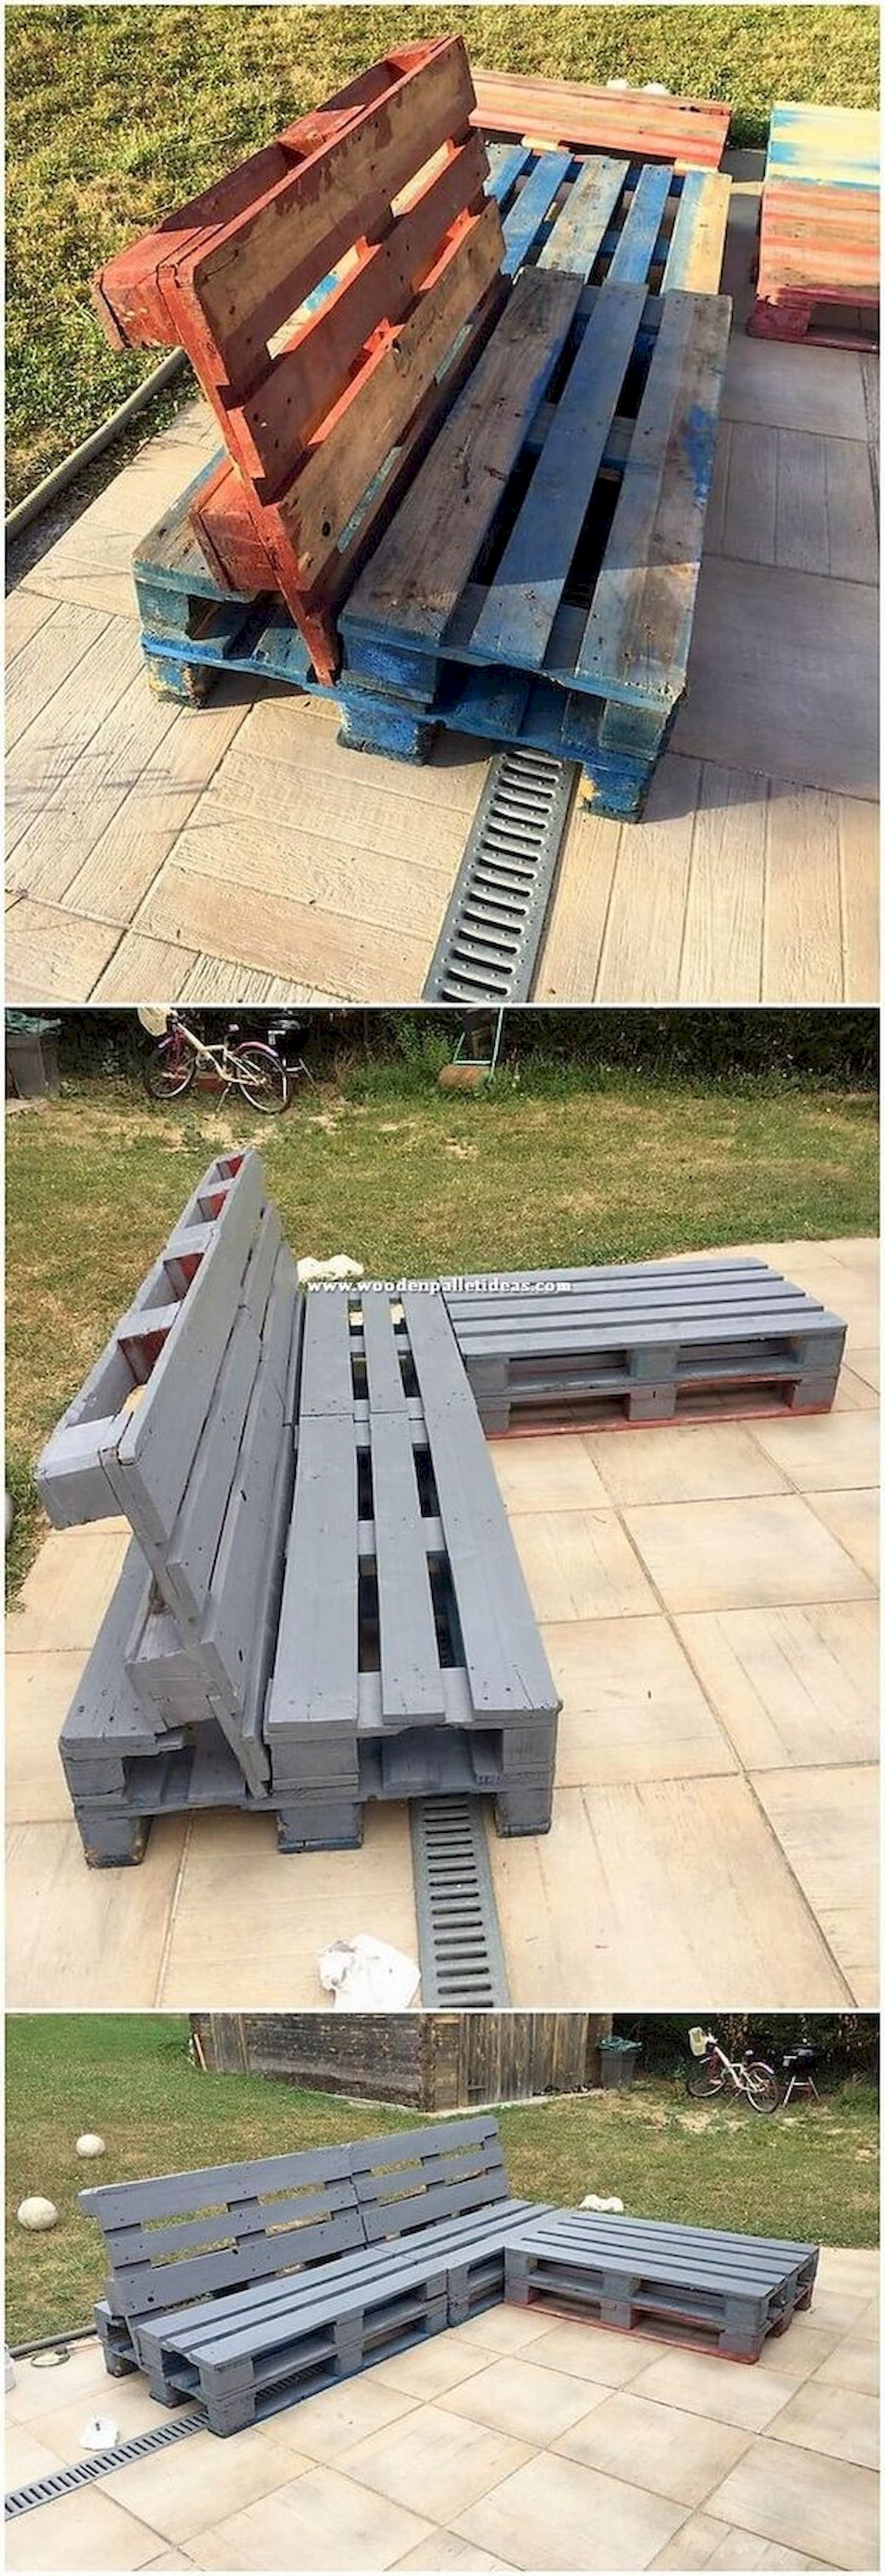 50 Amazing DIY Projects Outdoor Furniture Design Ideas (35)